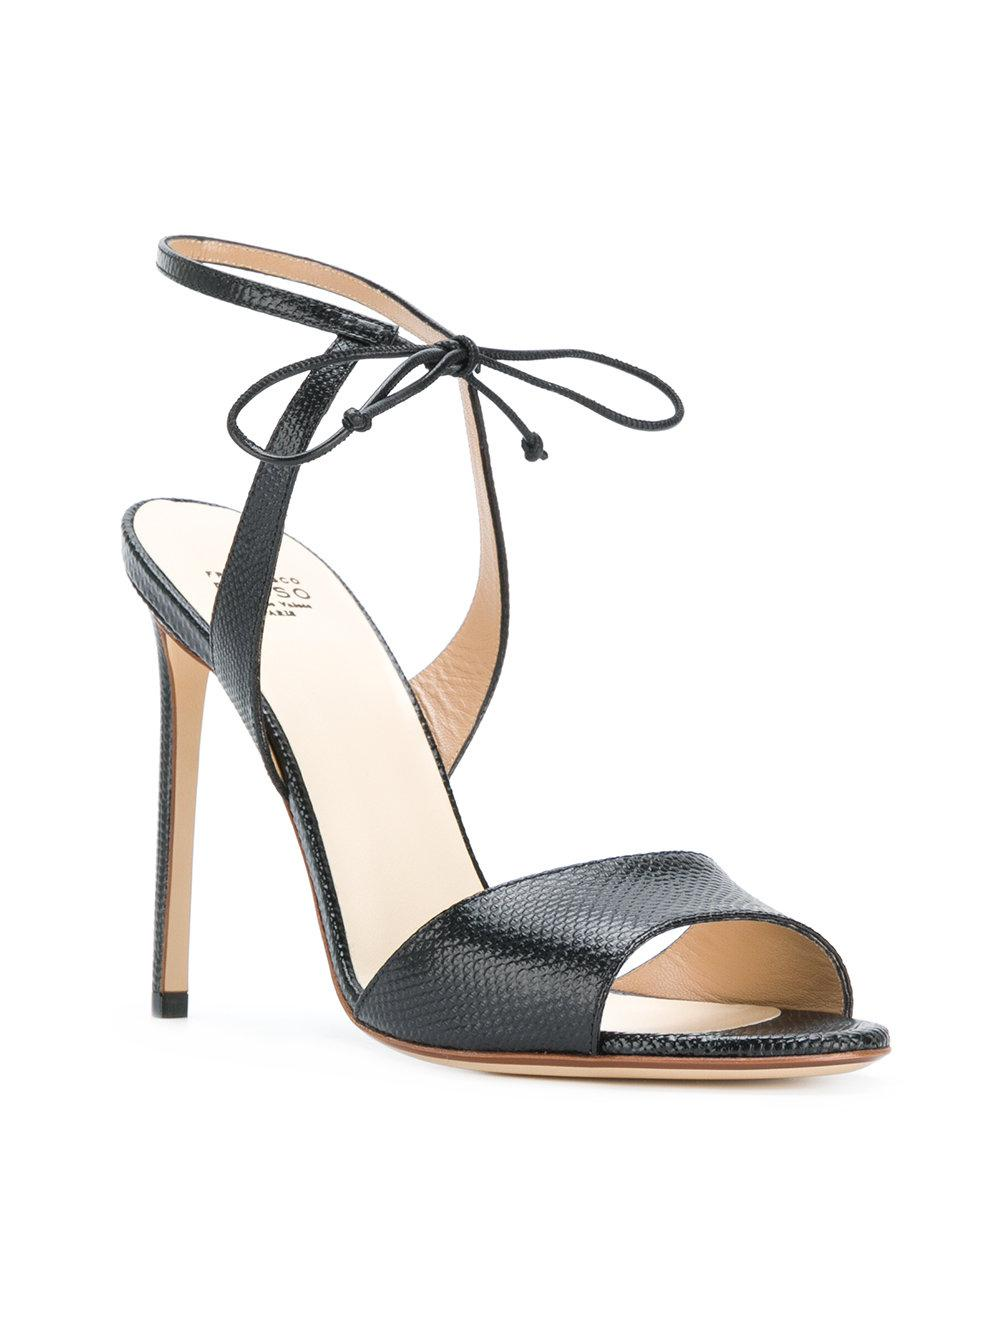 Francesco Russo Hill Sandals In Black Lyst